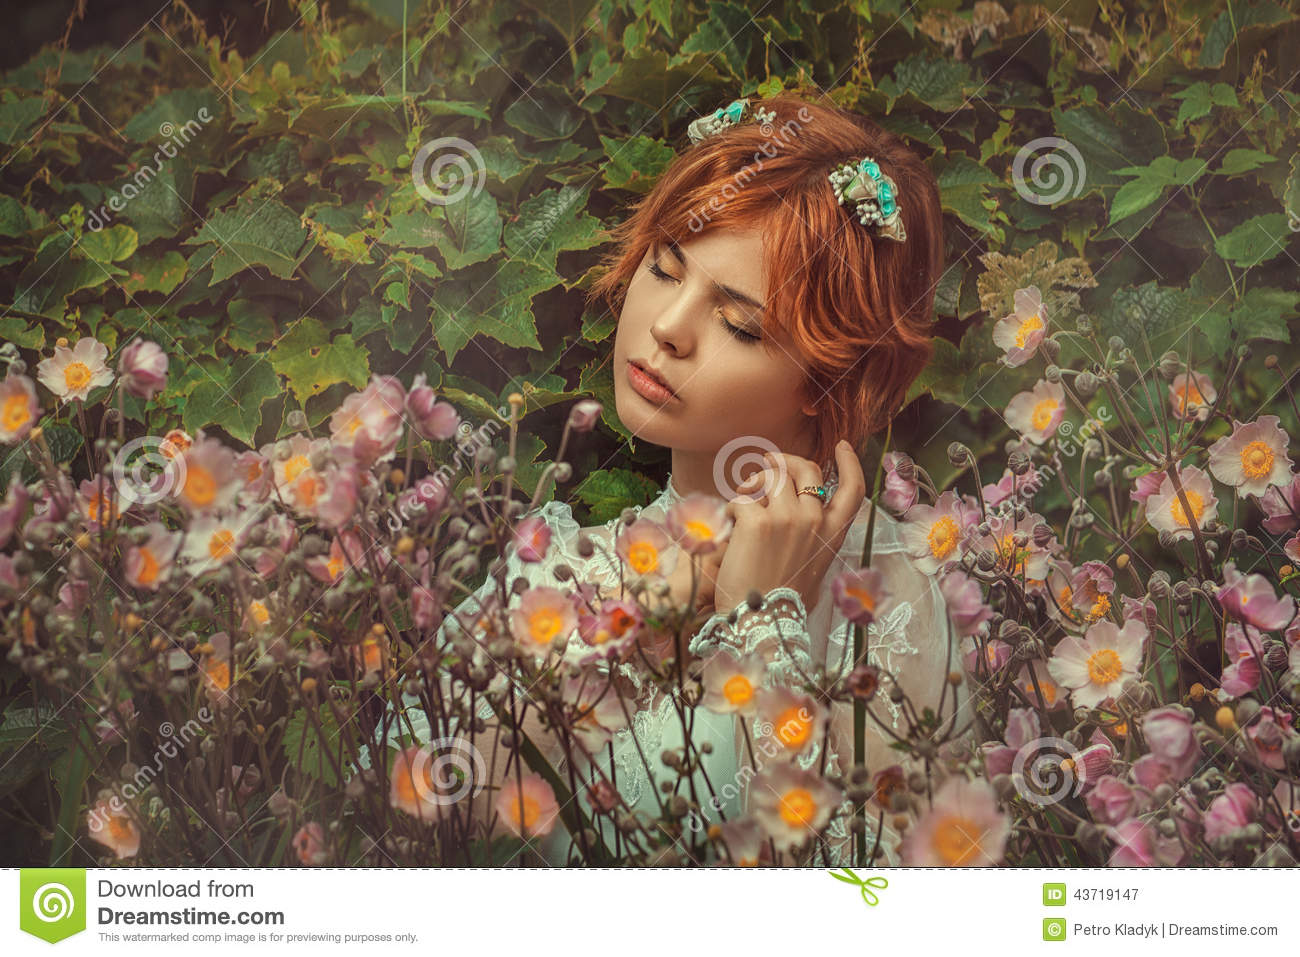 Girl in flowers